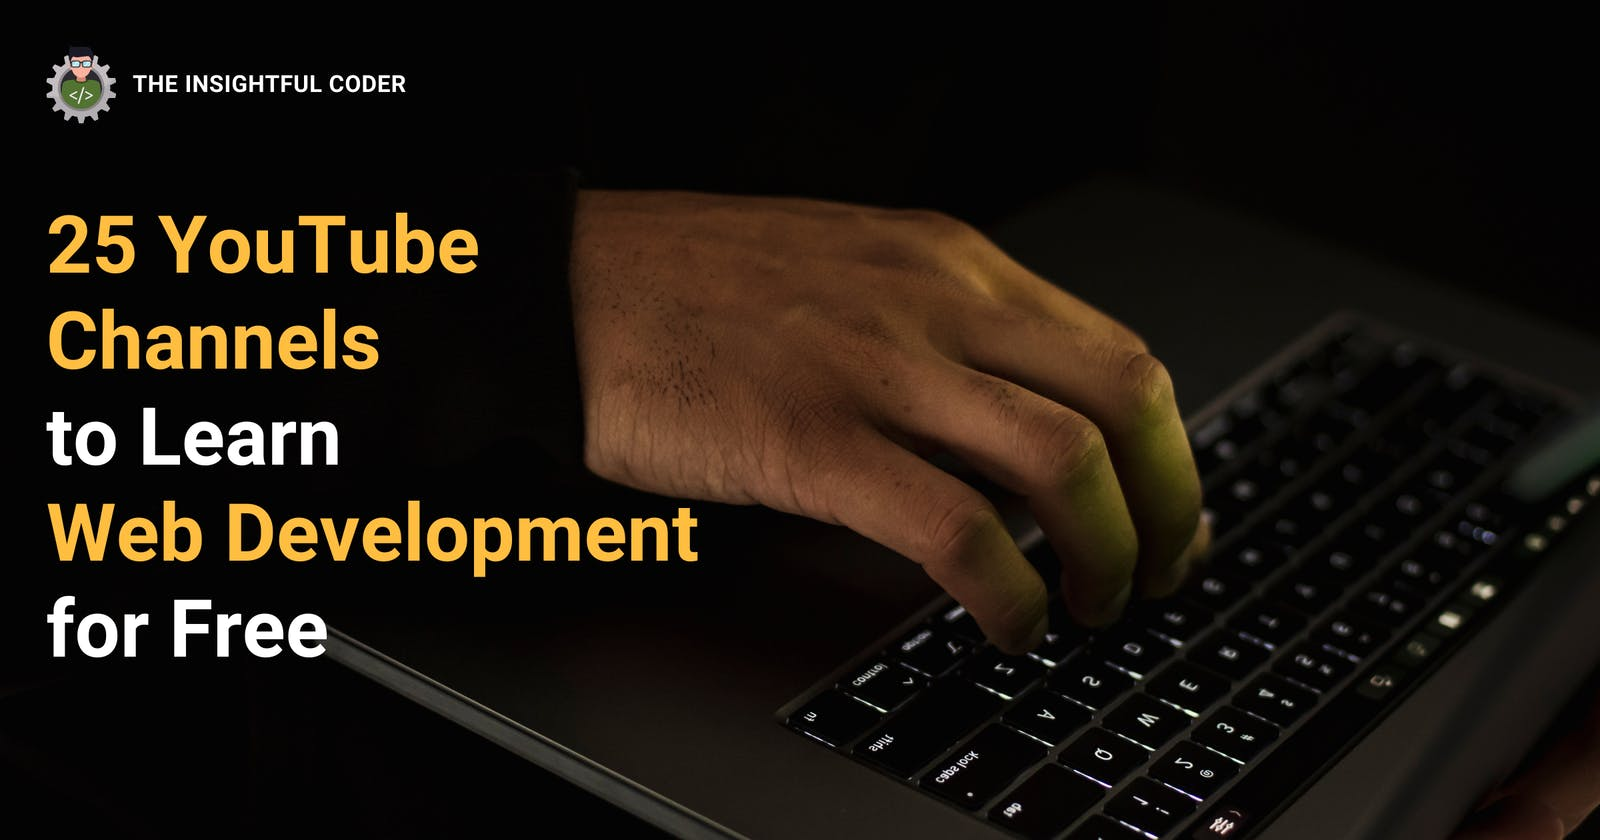 25 YouTube Channels to Learn Web Development for Free